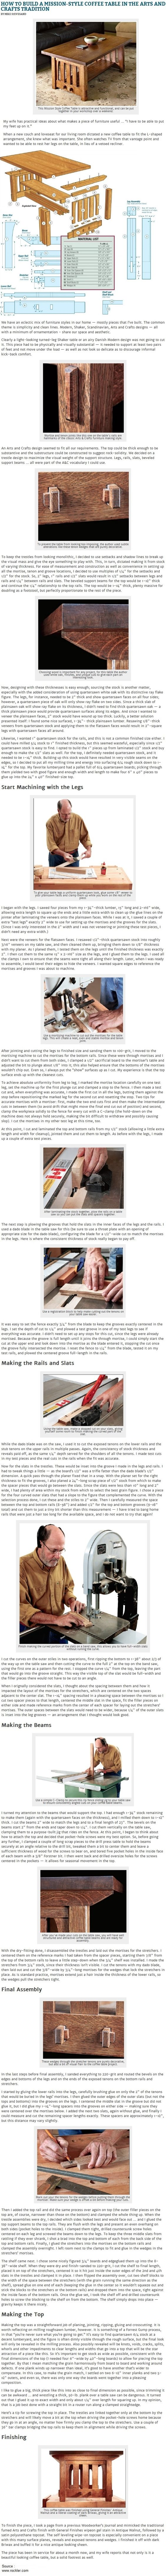 How to Build a Mission-Style Coffee Table in the Arts and Crafts Tradition | WoodworkerZ.com